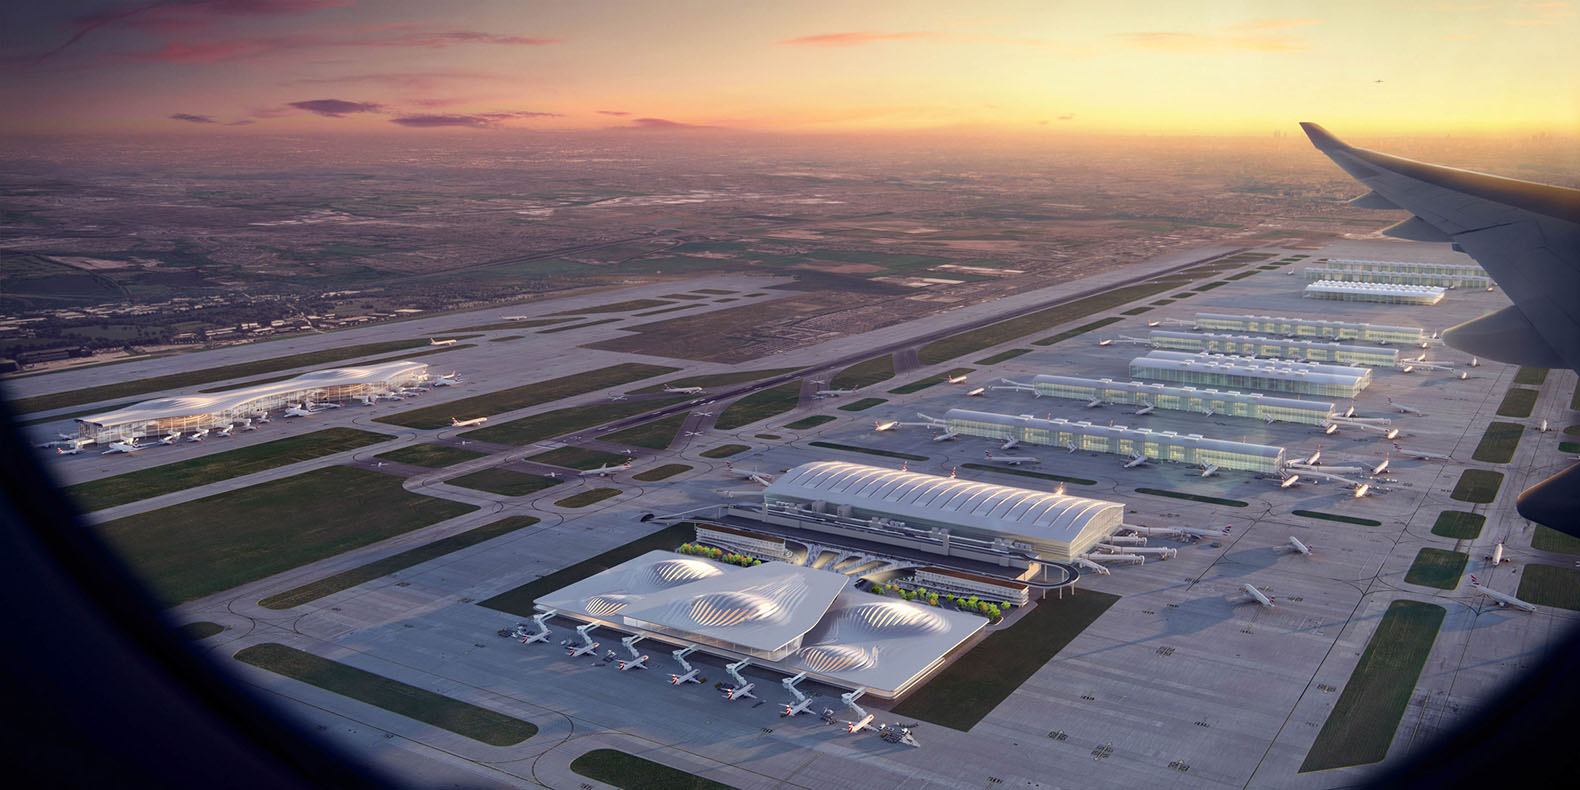 Exciting new designs for Heathrow Airport's expansion ...